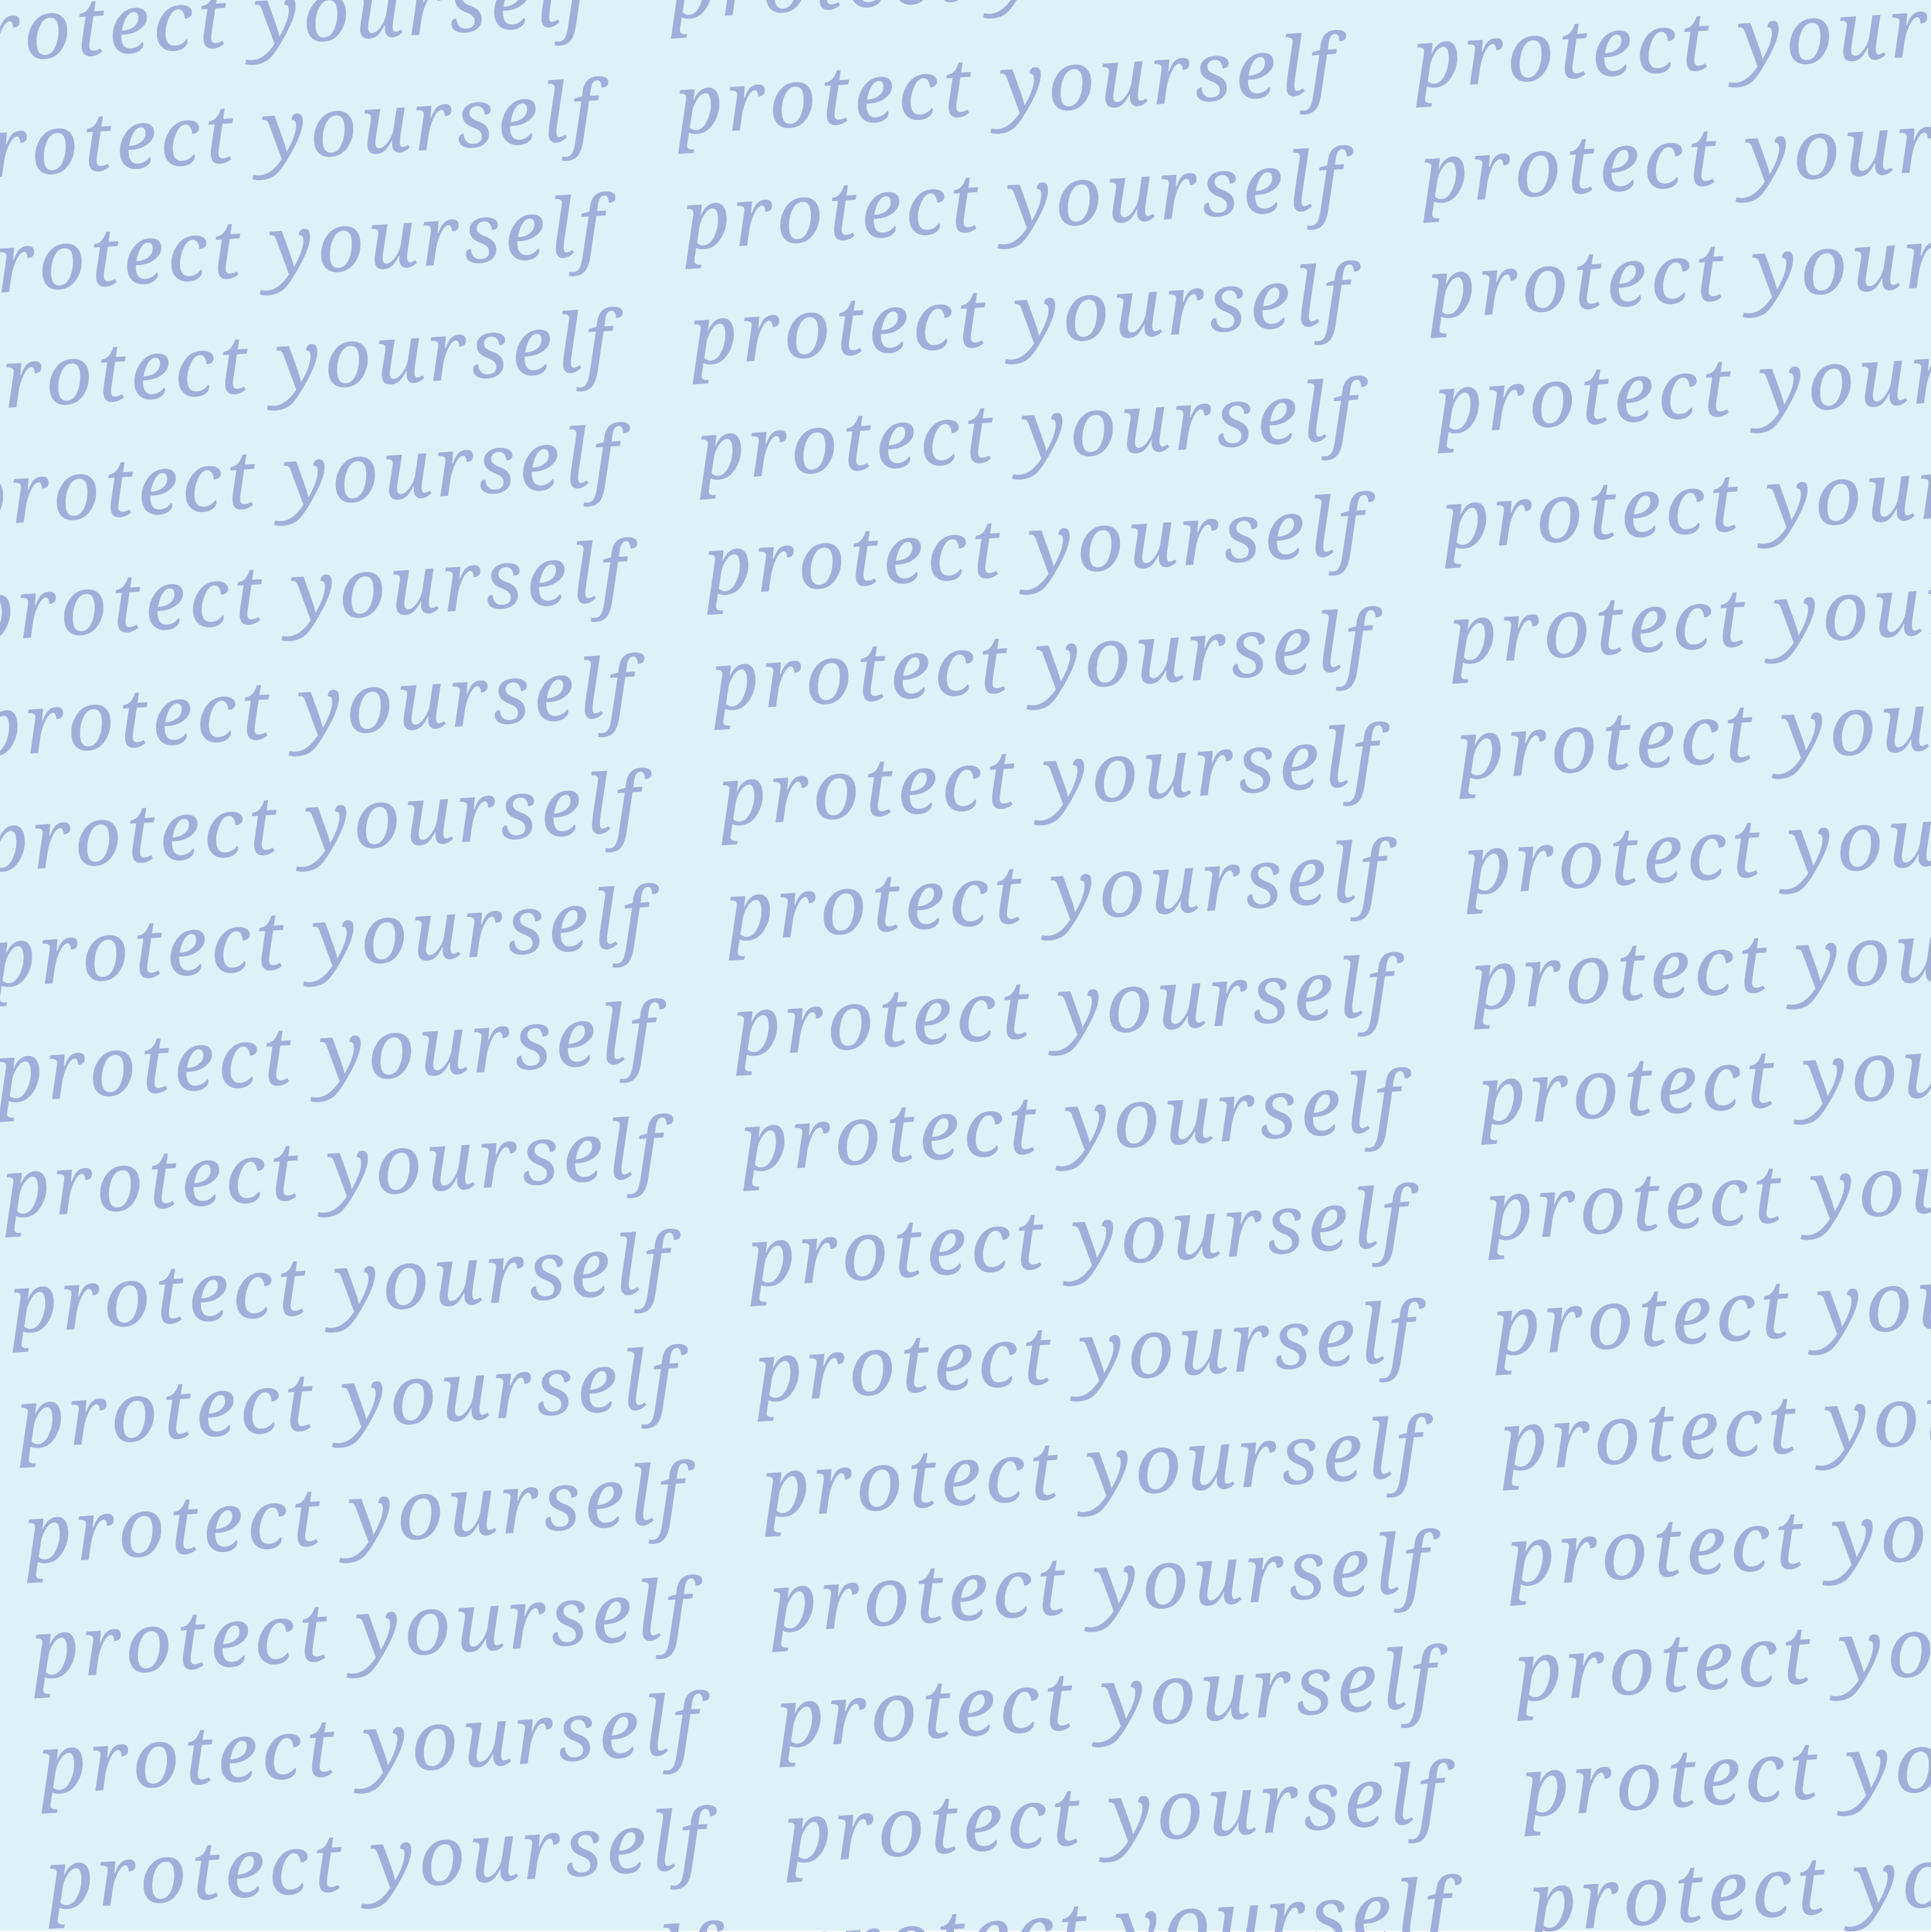 Legally Protect Yourself